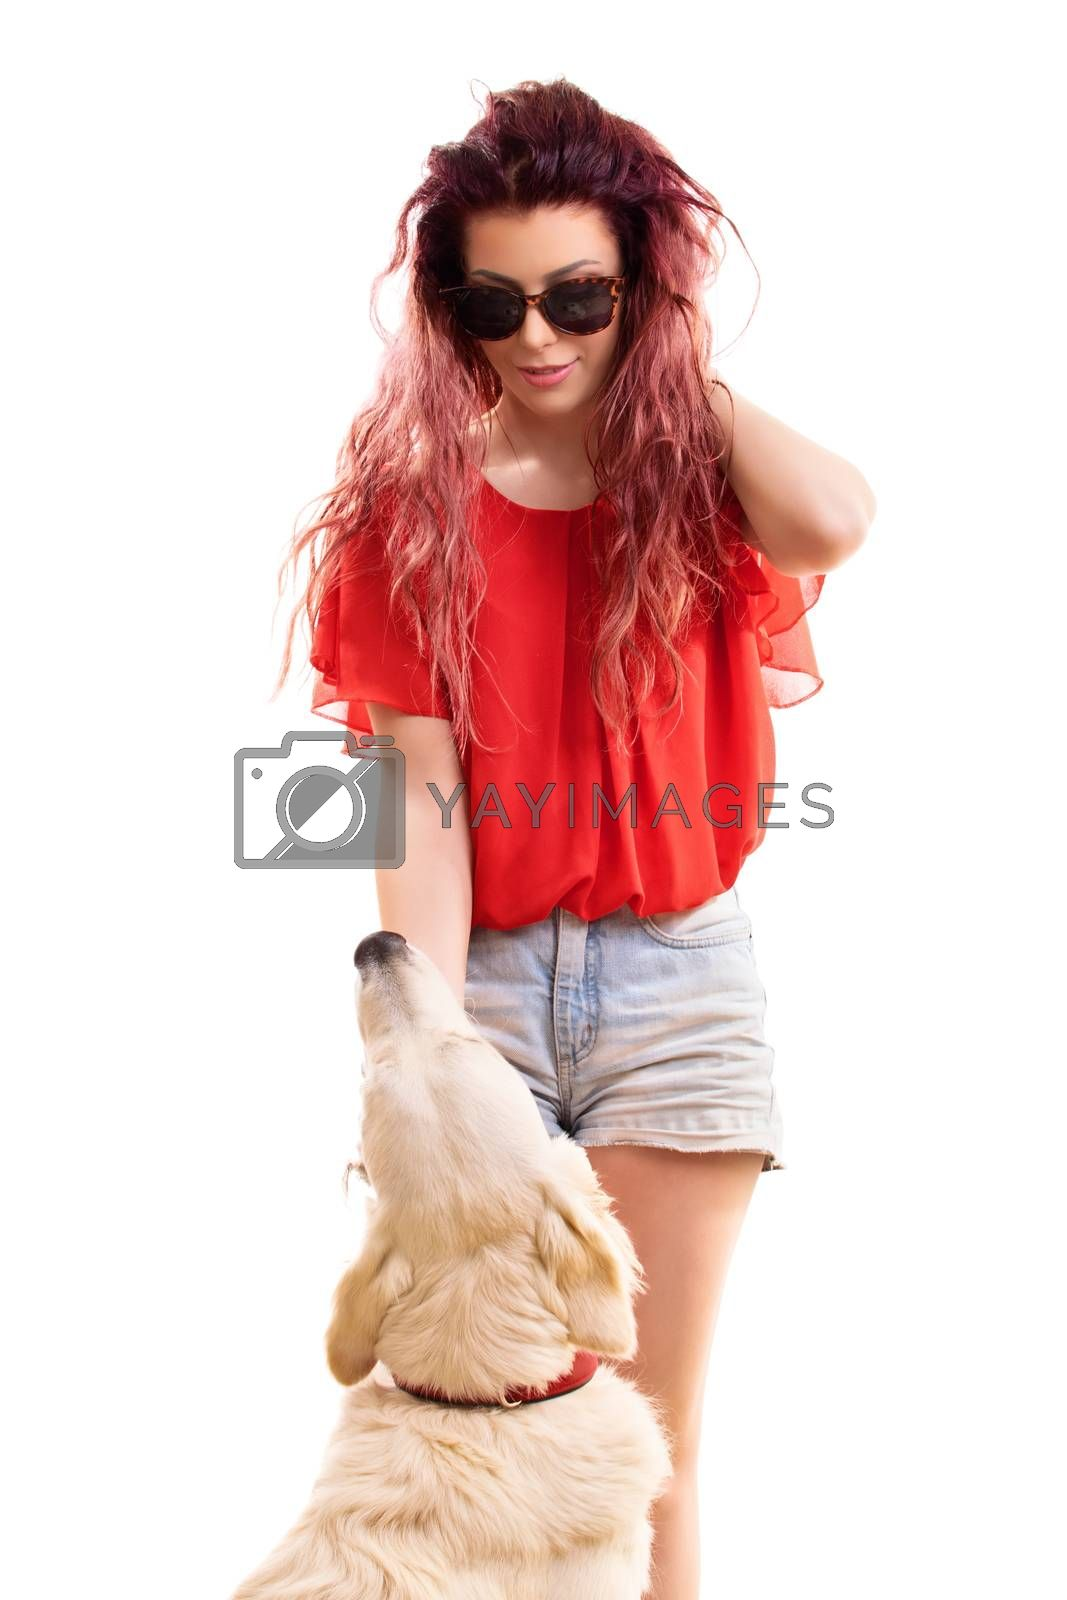 Beautiful young redhead girl with sunglasses, petting her dog preparing to go out for a walk, isolated on a white background.